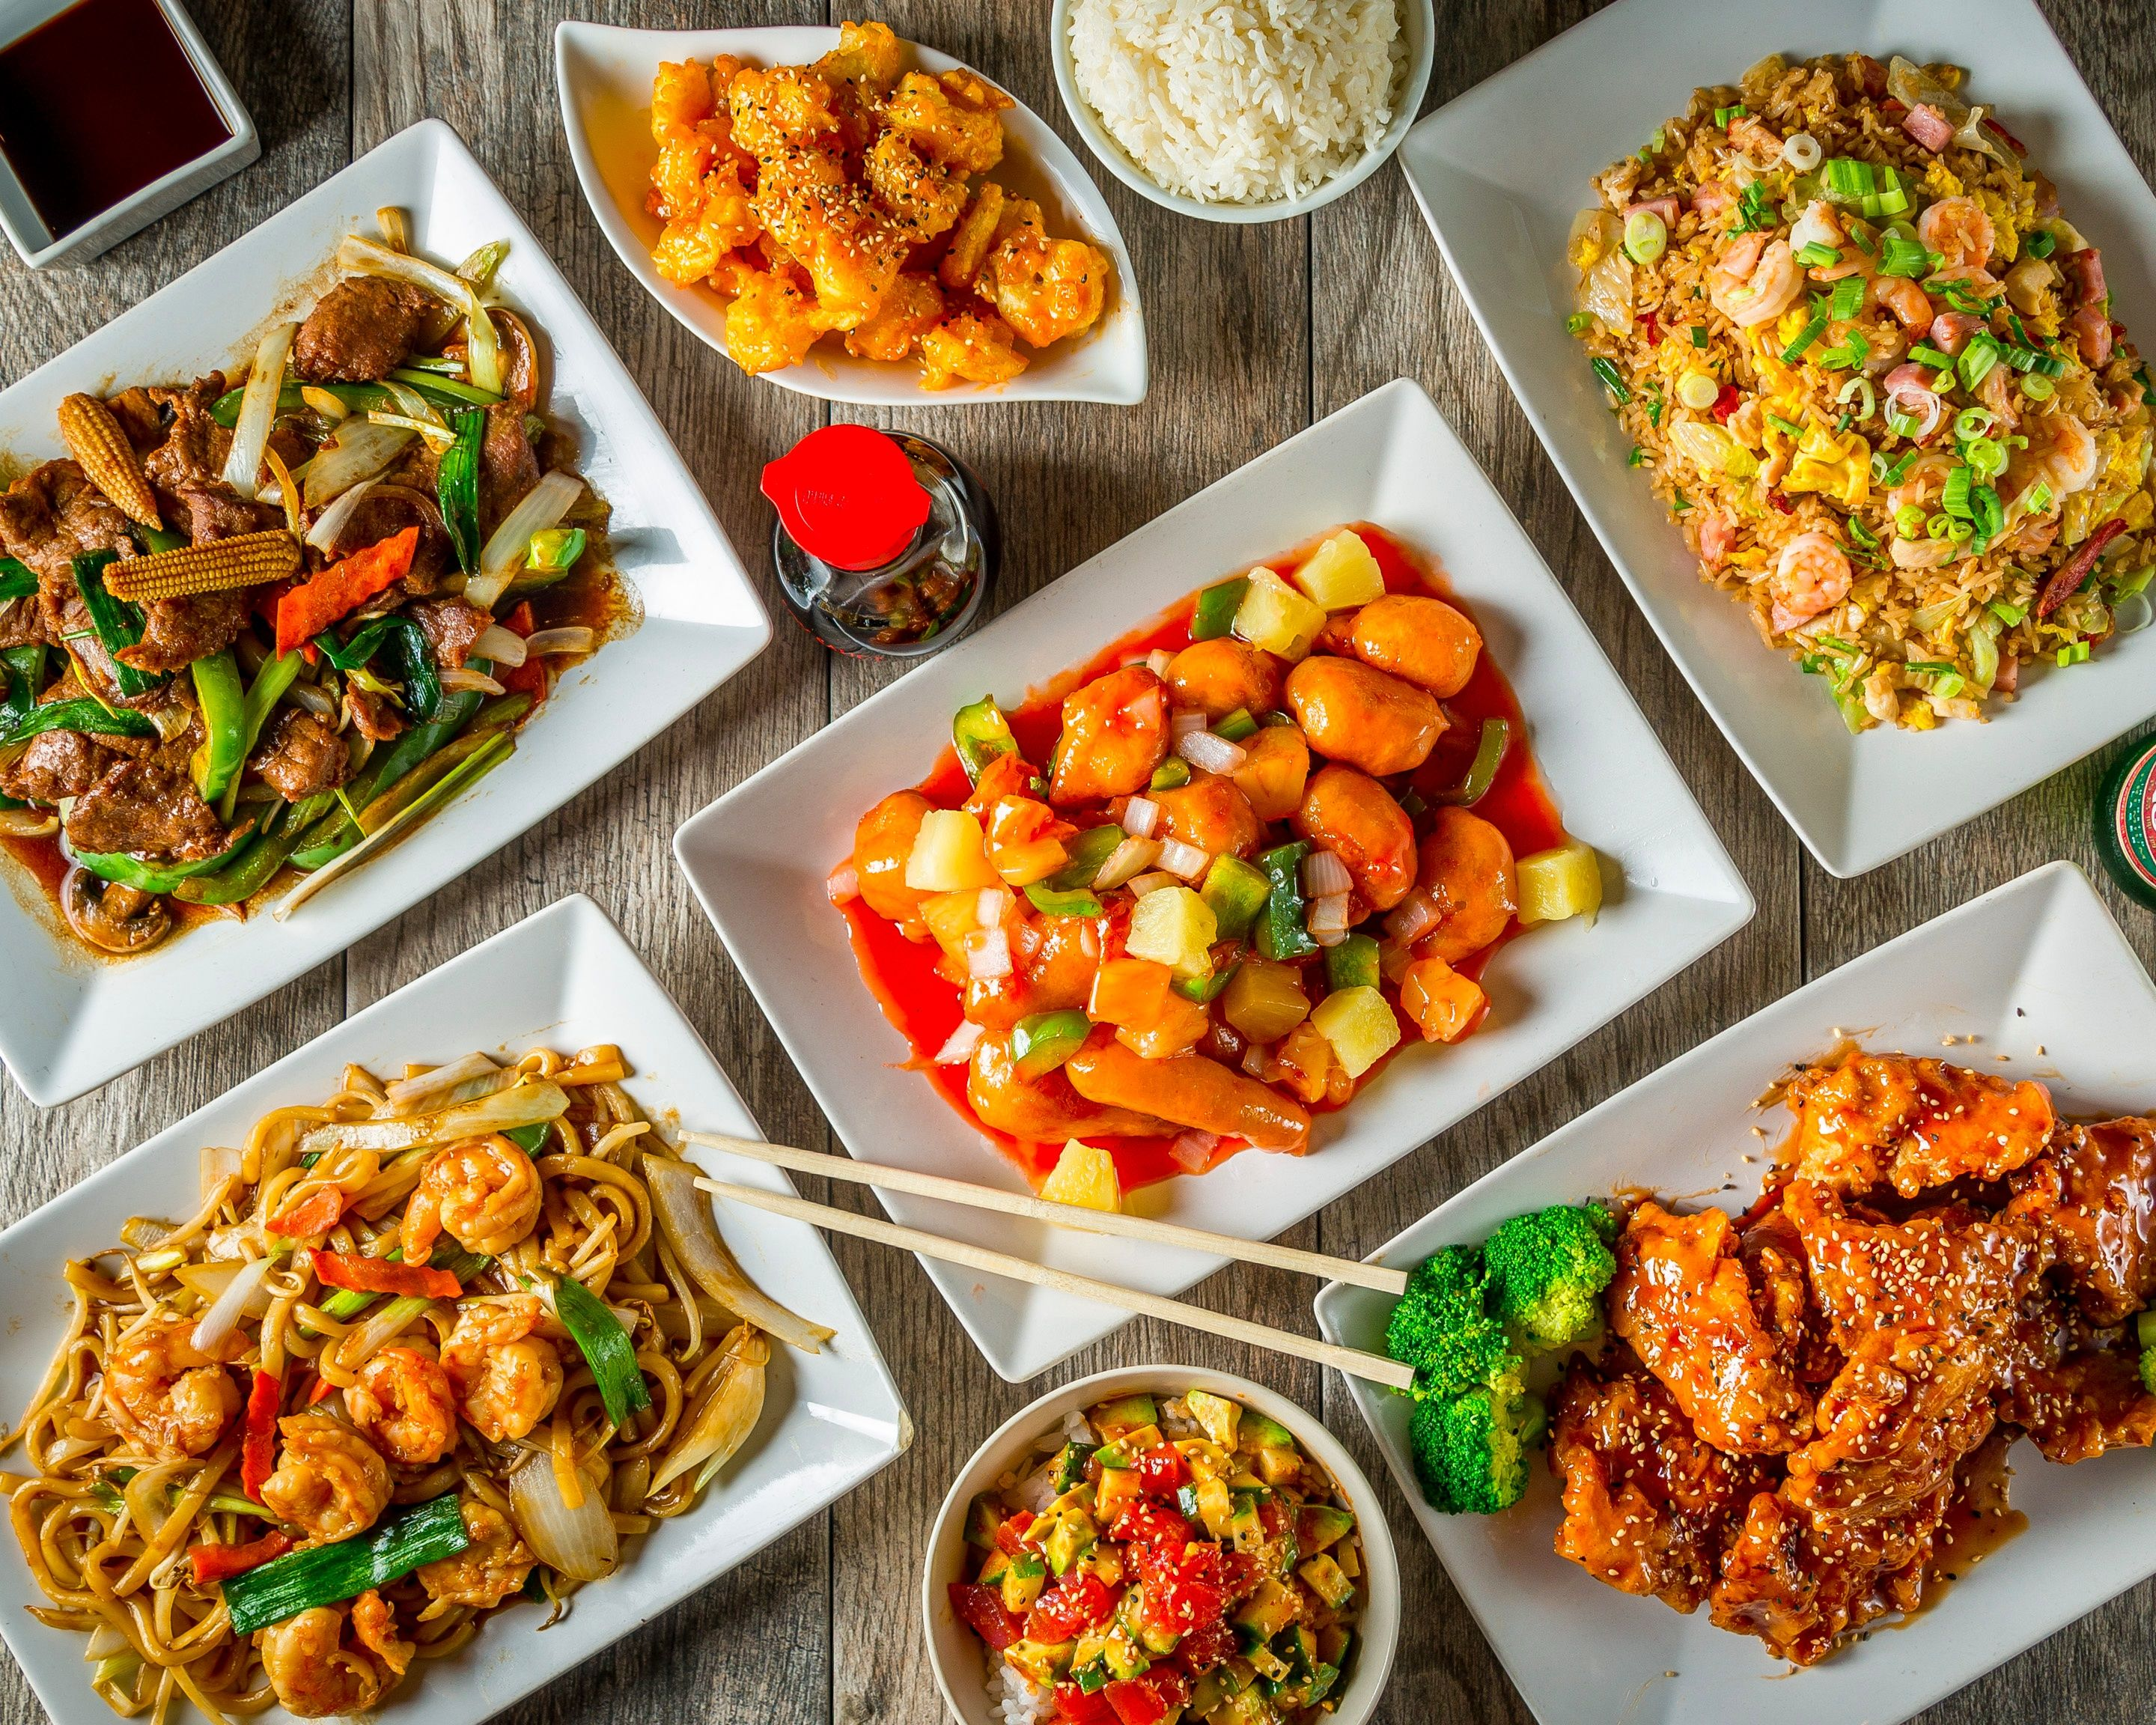 Byba: Chinese Food Near Me That Delivers 19144